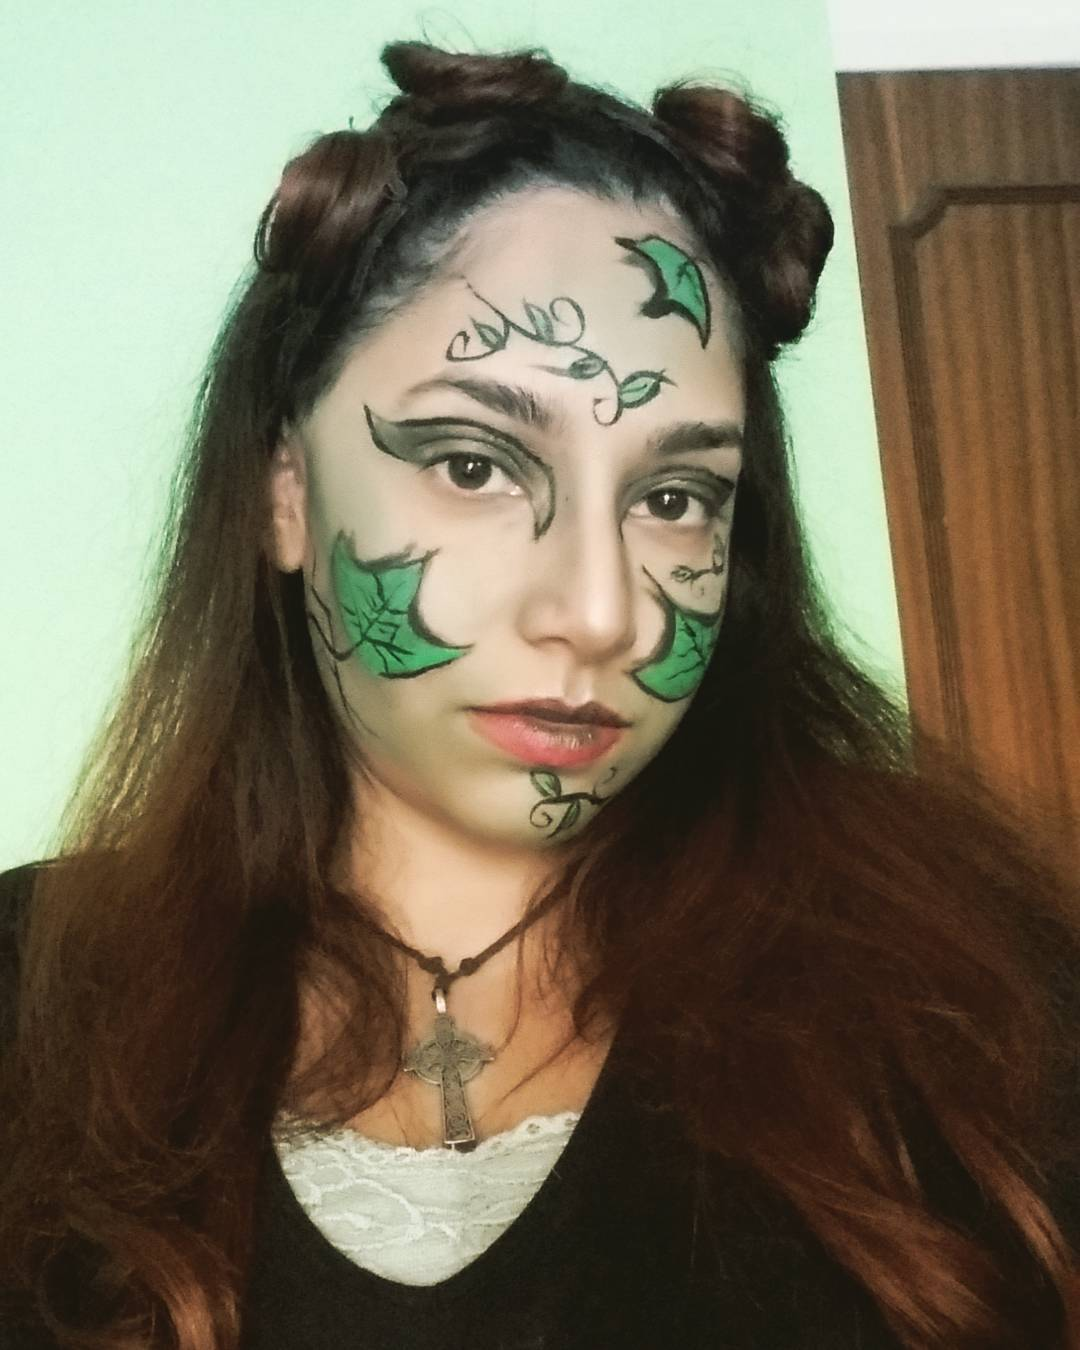 Villains Poison Ivy Makeup Design